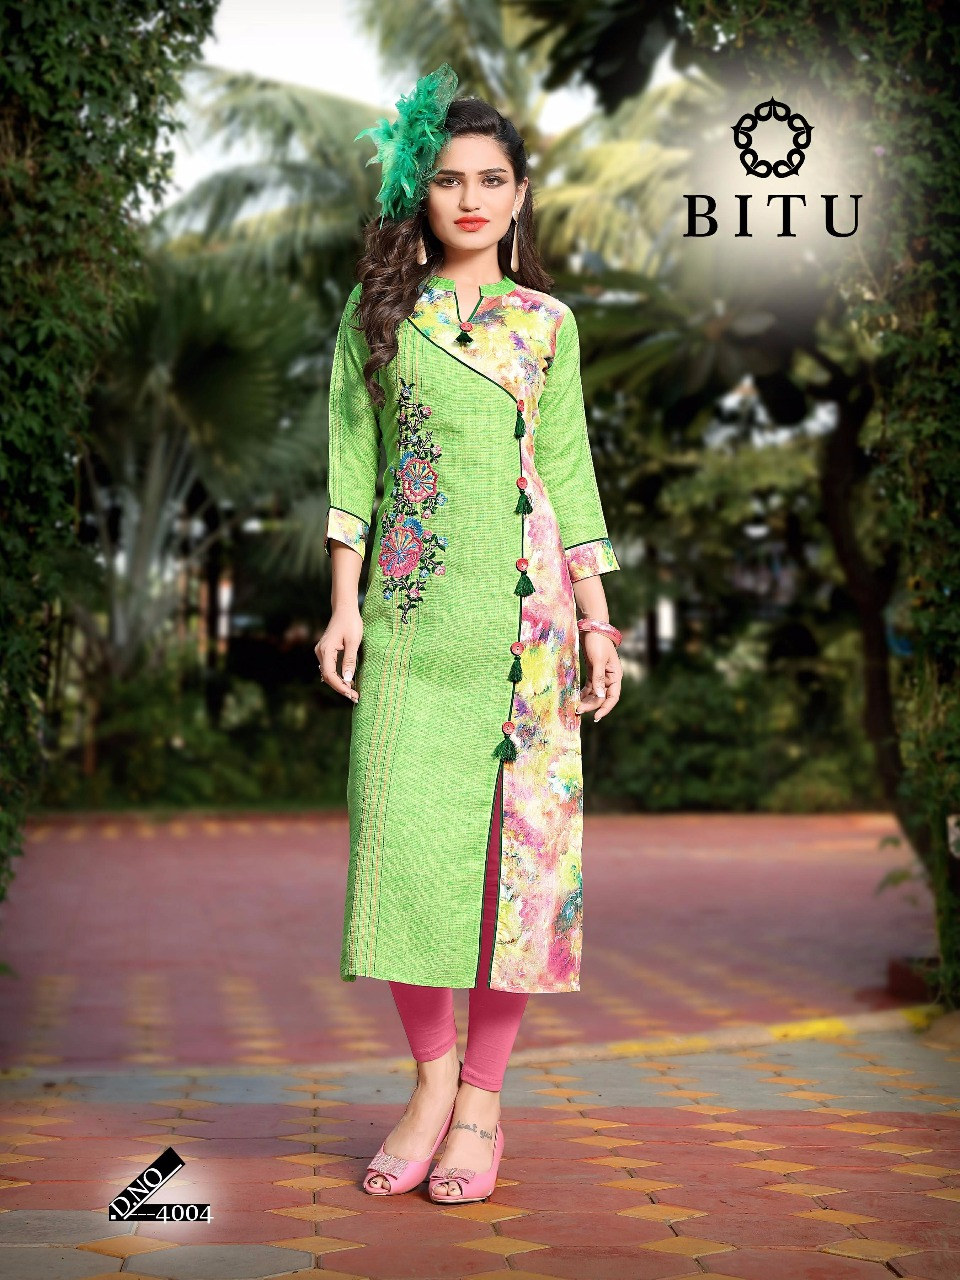 Bitu Rich Look 4004